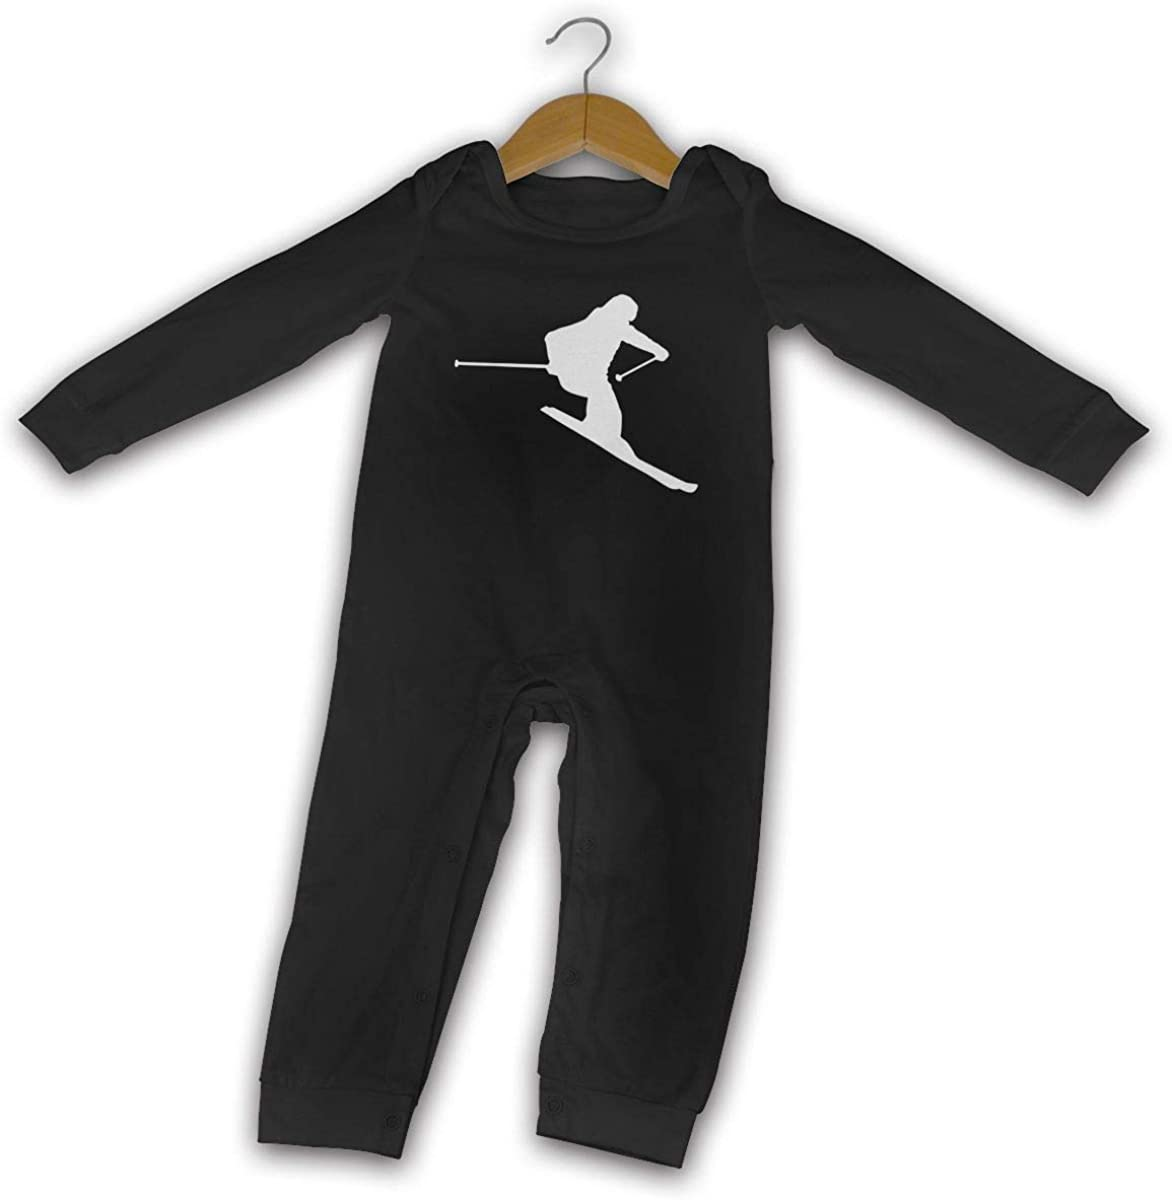 Skier Printed Newborn Infant Baby Boy Girl Jumpsuit Long Sleeve Outfits Black YELTY6F Skiing